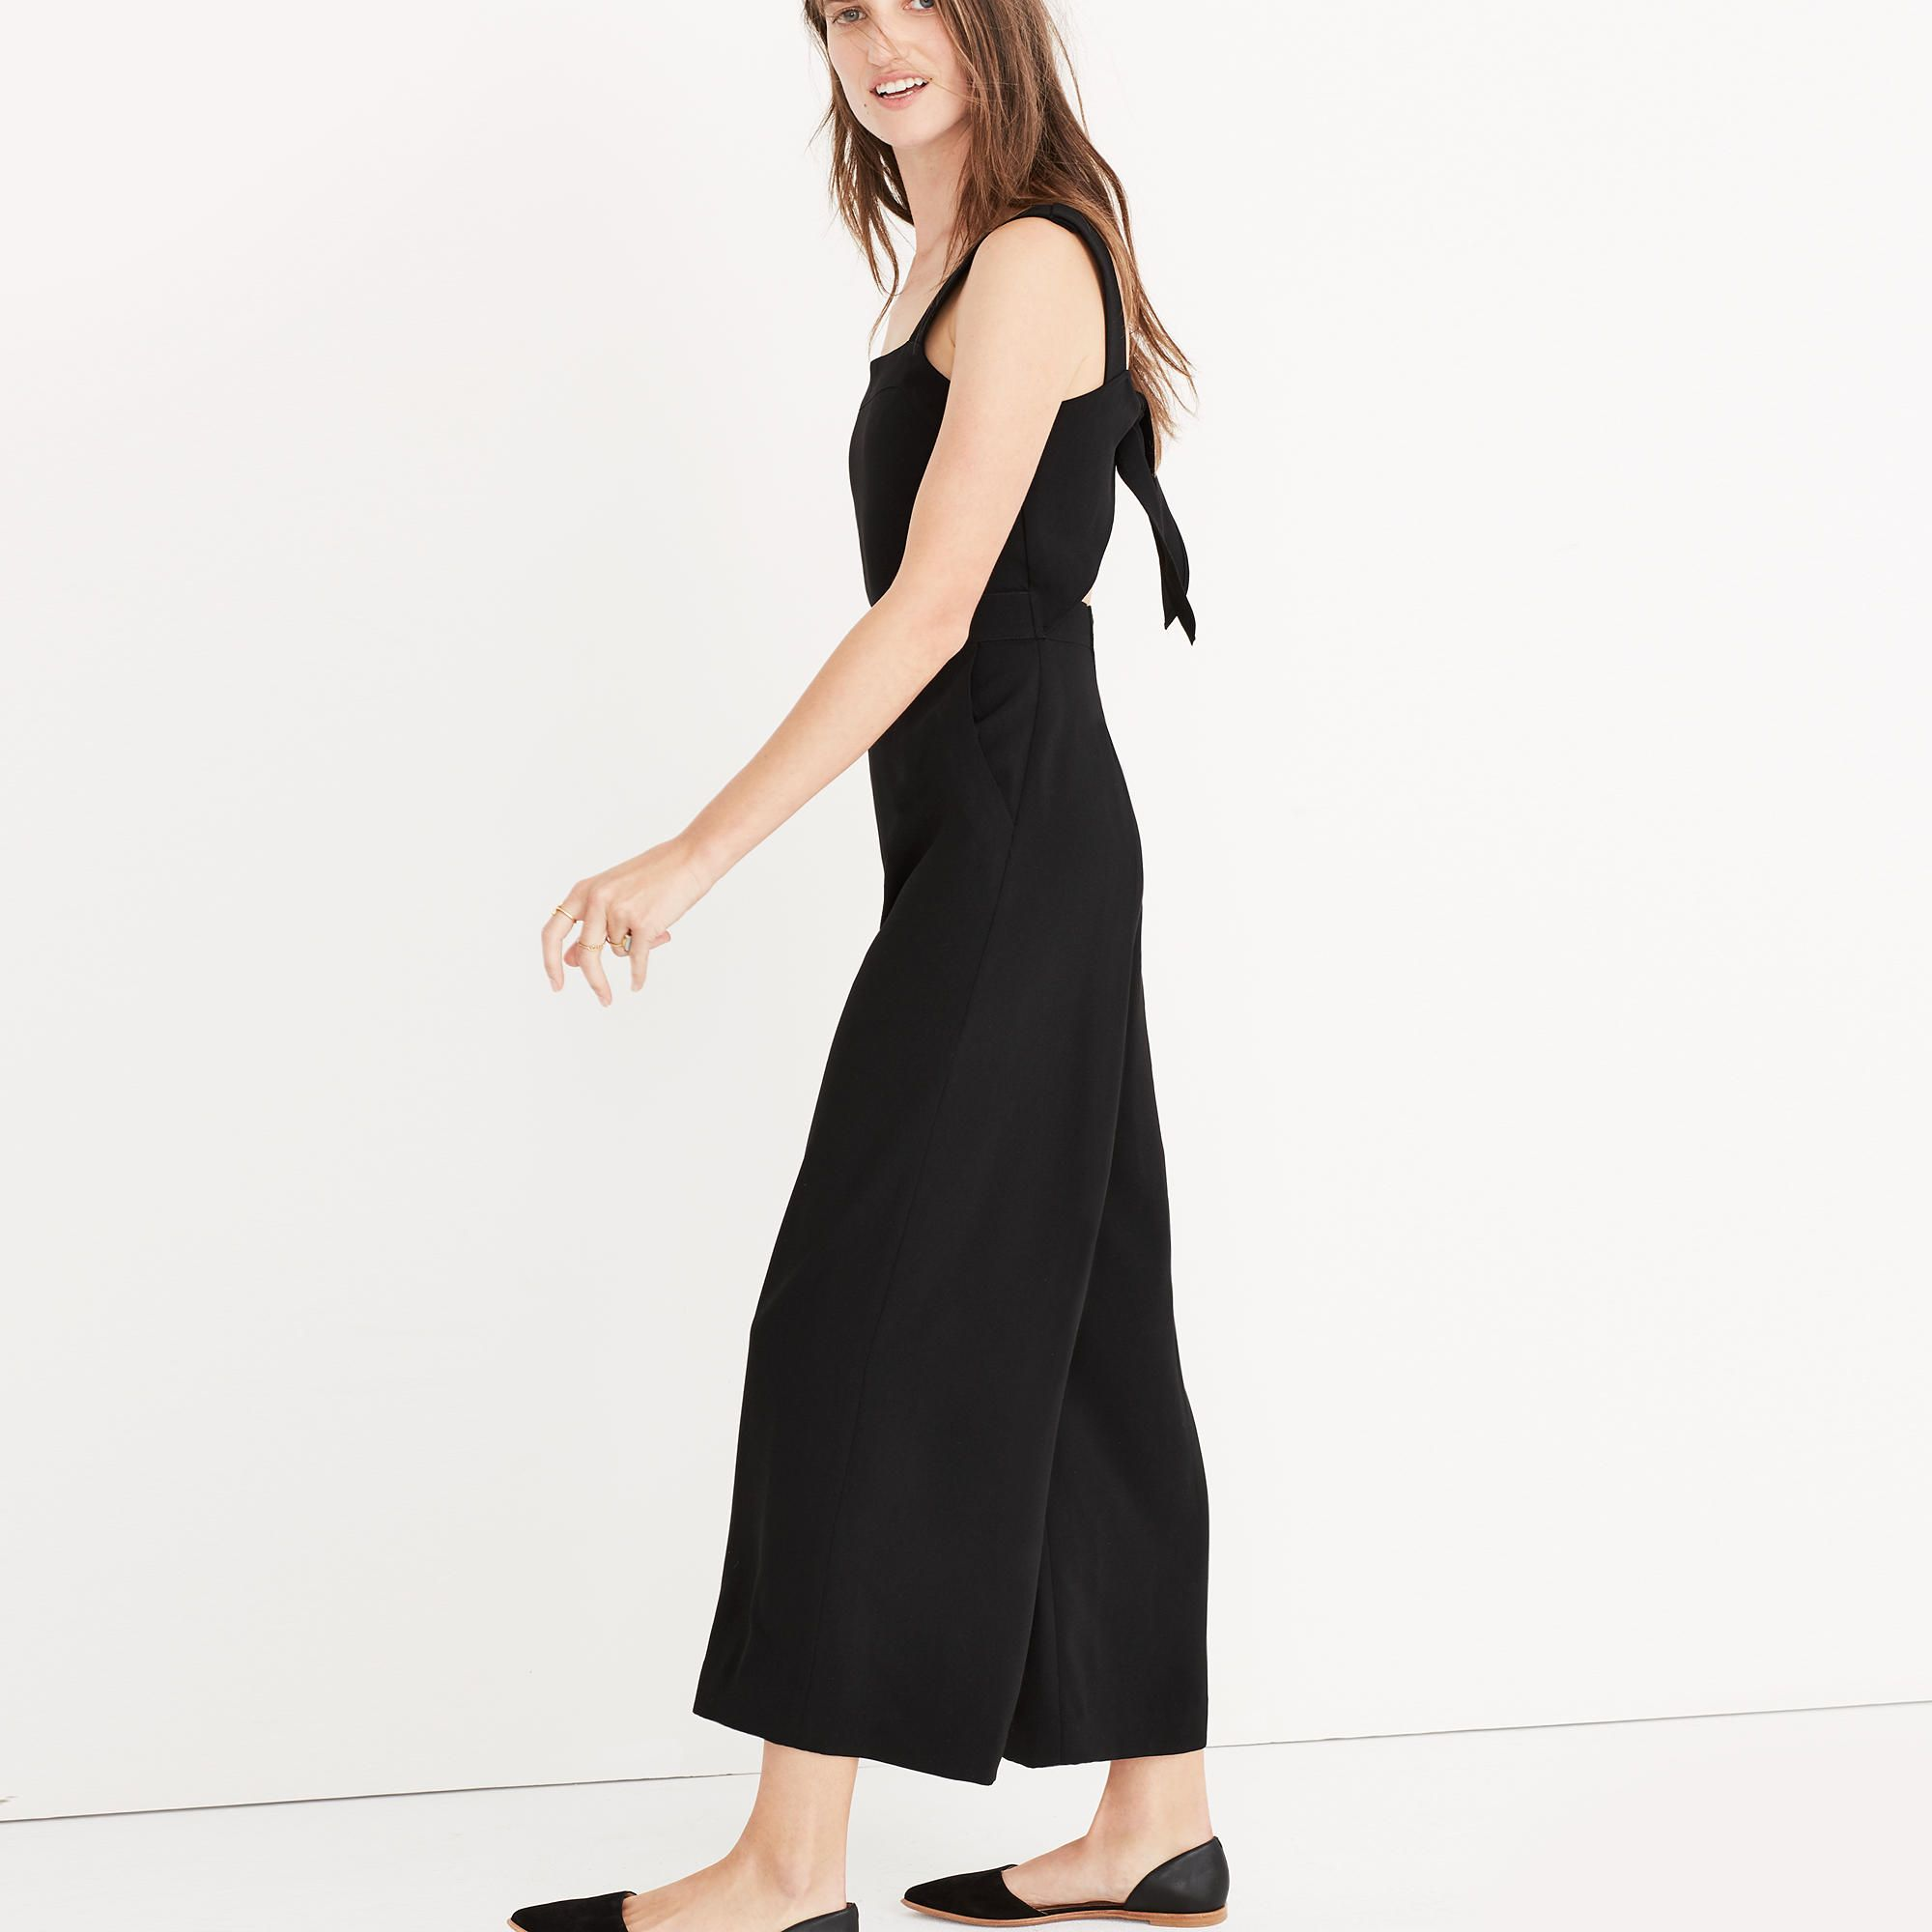 Apron Bow Back Jumpsuit Jumpsuits Rompers Madewell Style